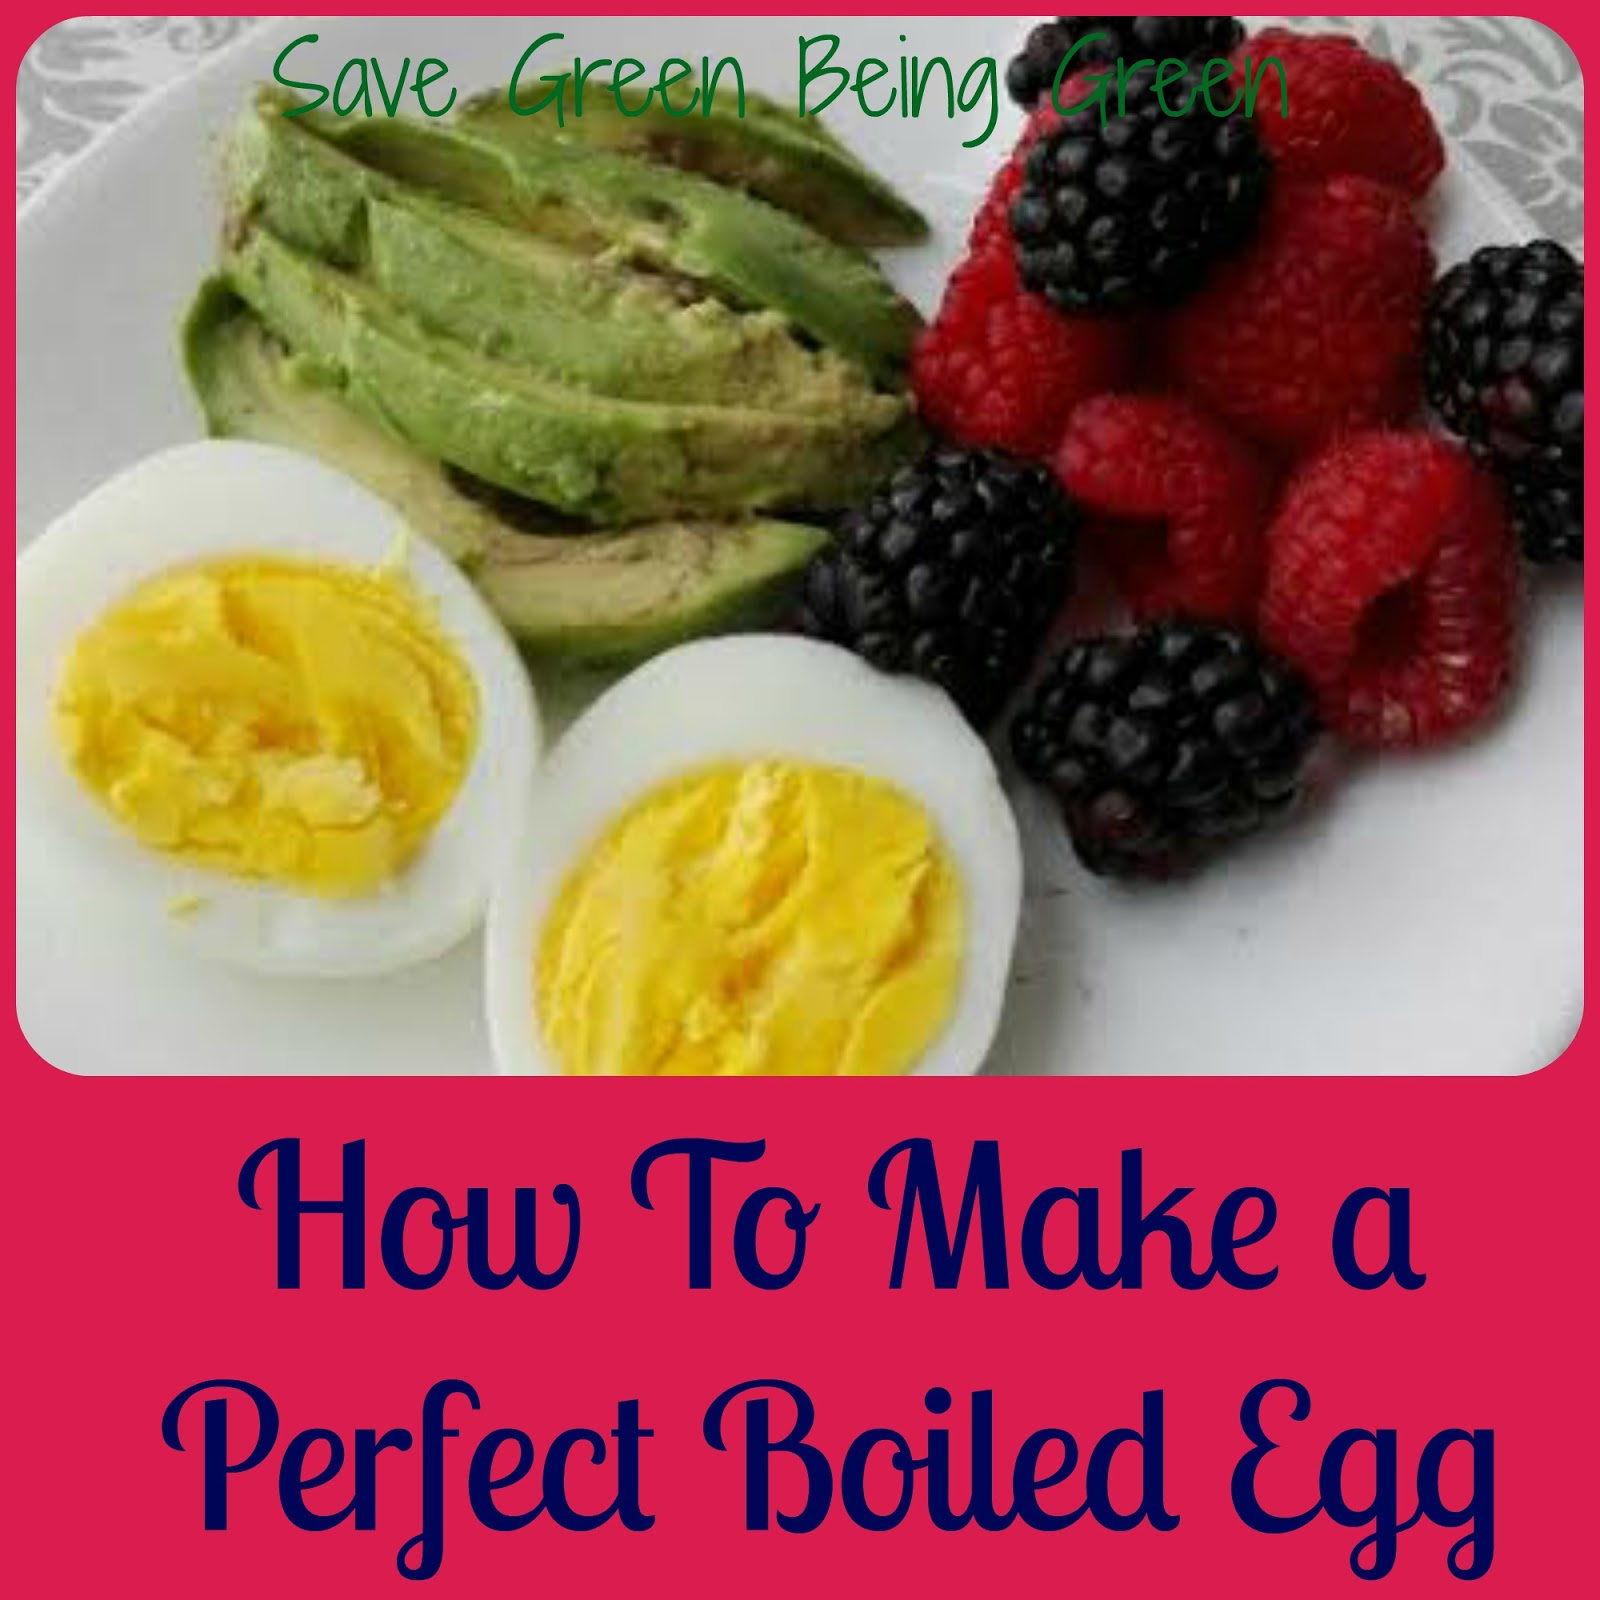 Save Green Being Green: How to Make a Perfect Hard Boiled Egg